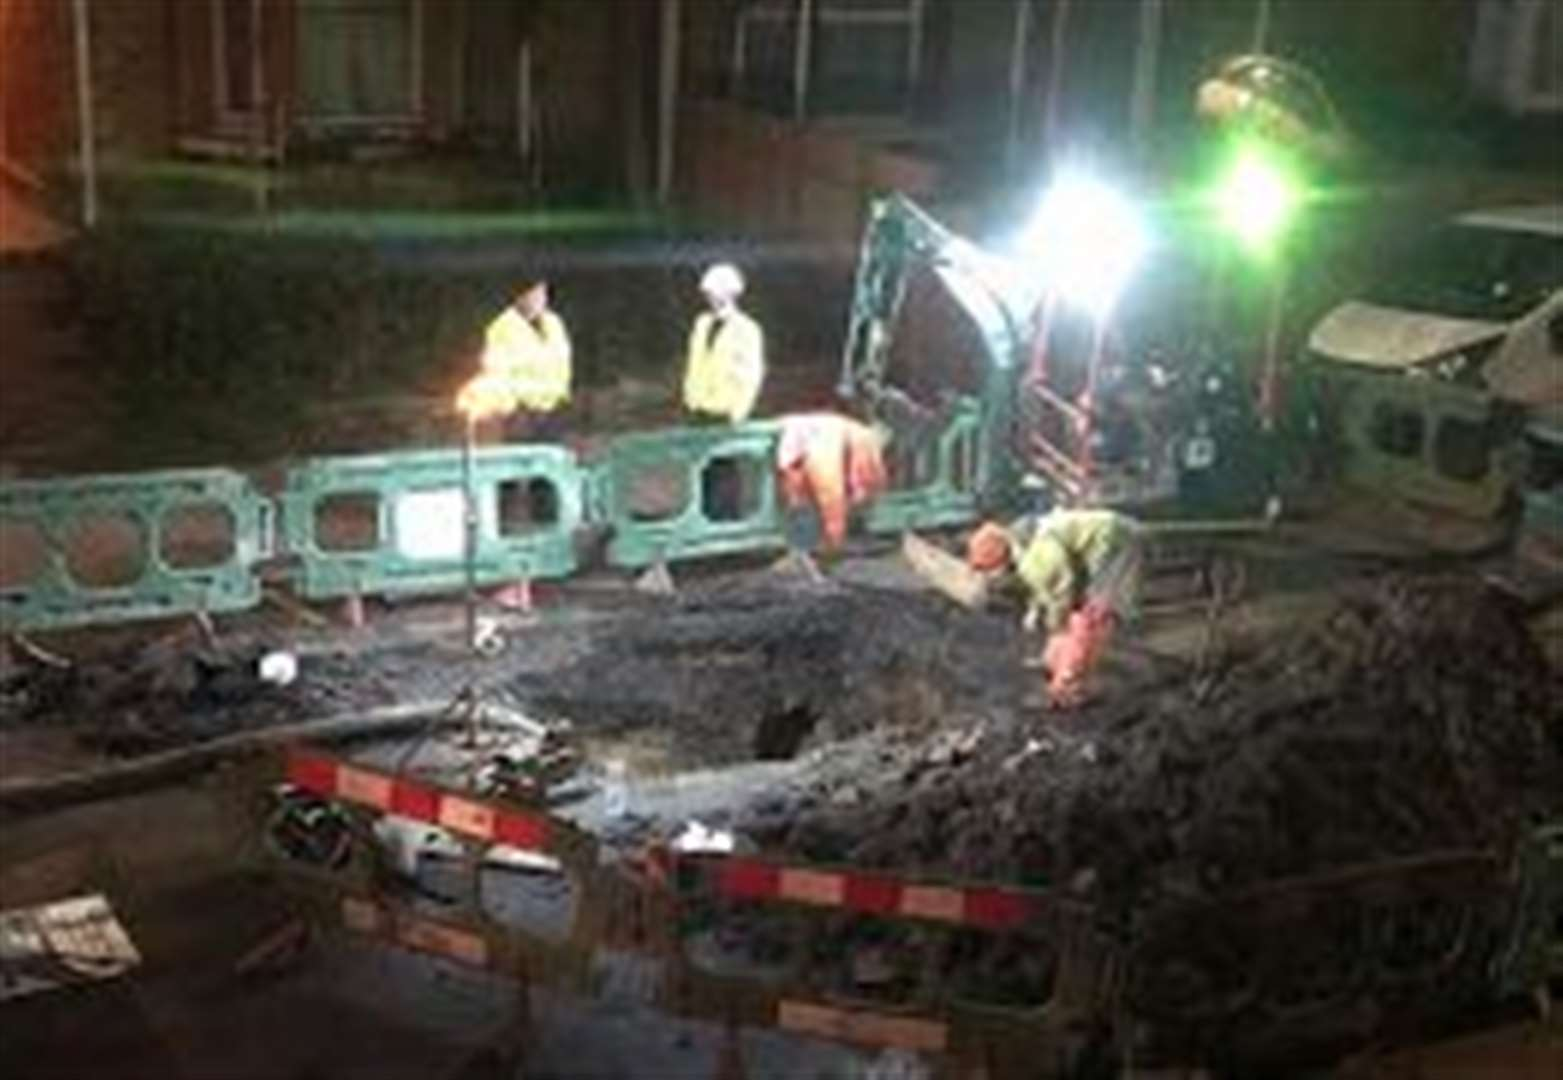 Roads remain shut after burst pipes fixed